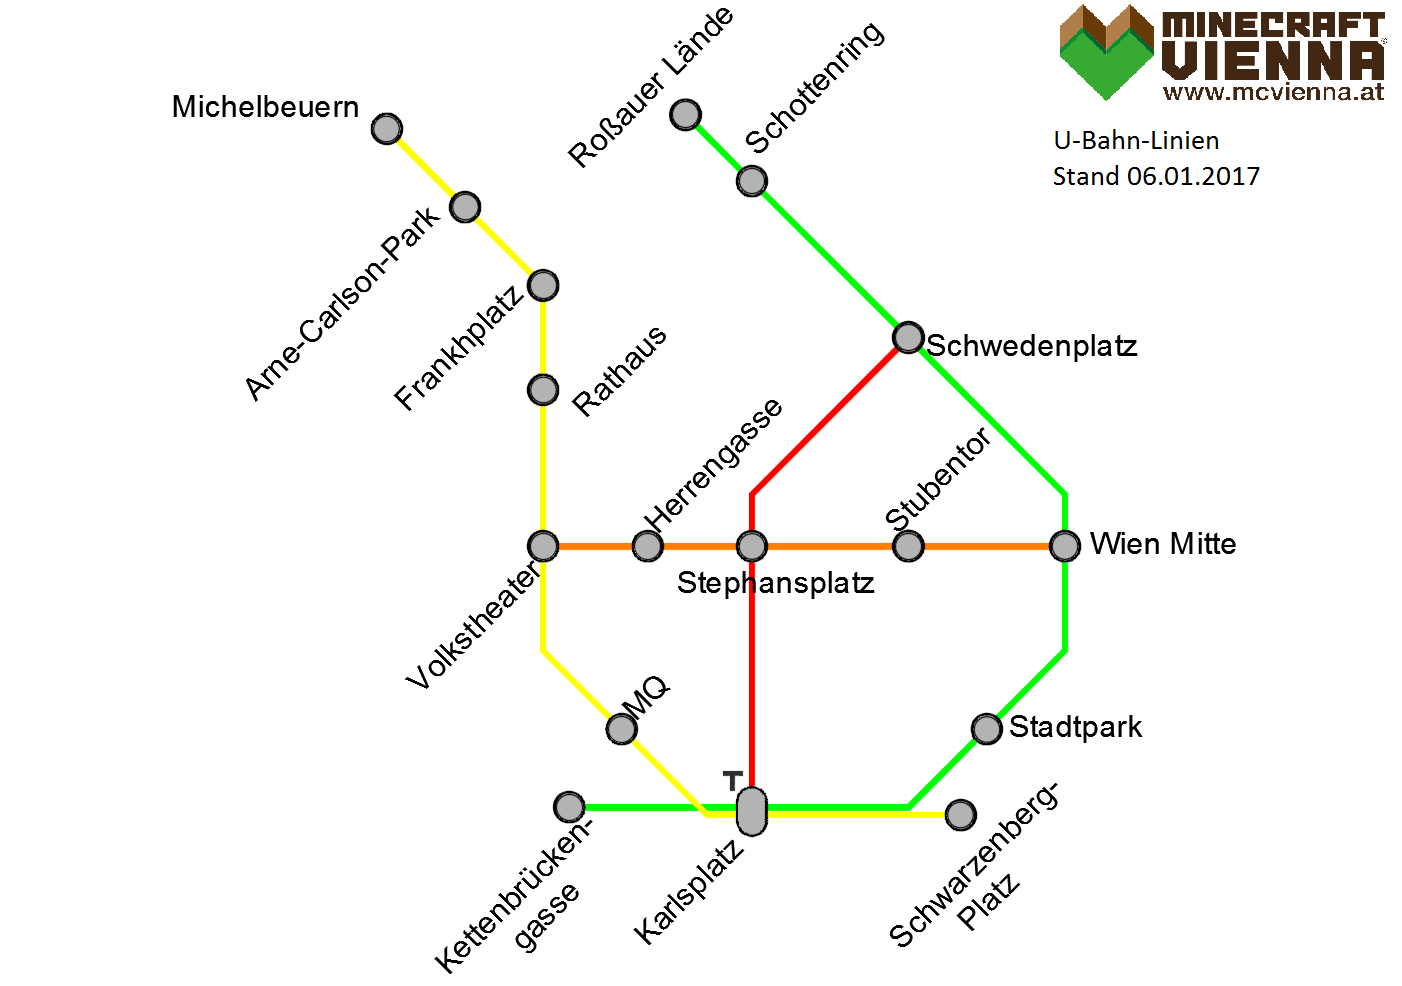 MCVIENNA Vienna Minecraft subway map